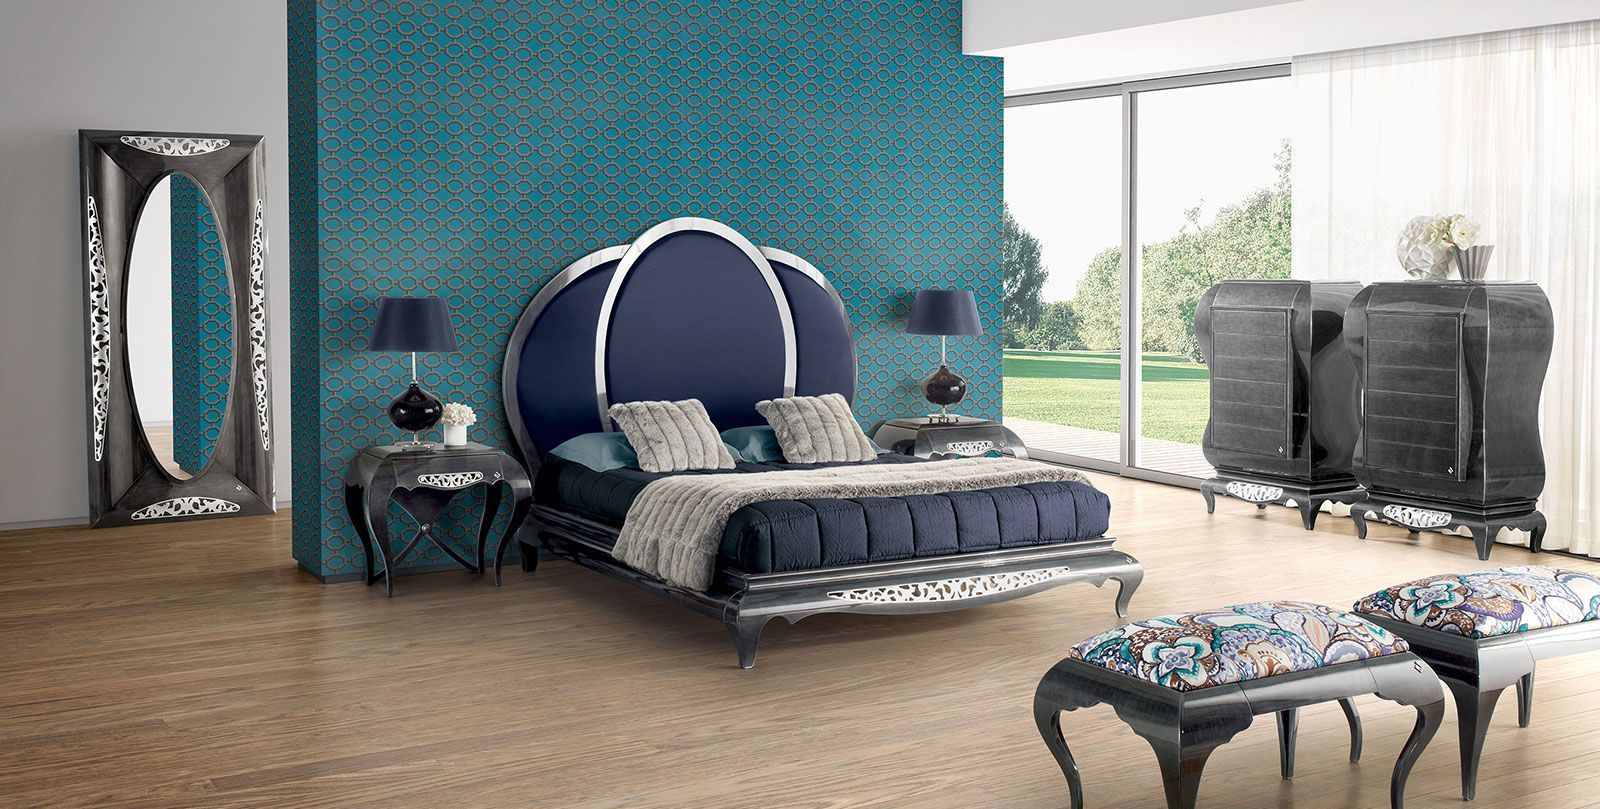 Double Bed New Baroque Design With Upholstered Headboard New  # Muebles Jetclass